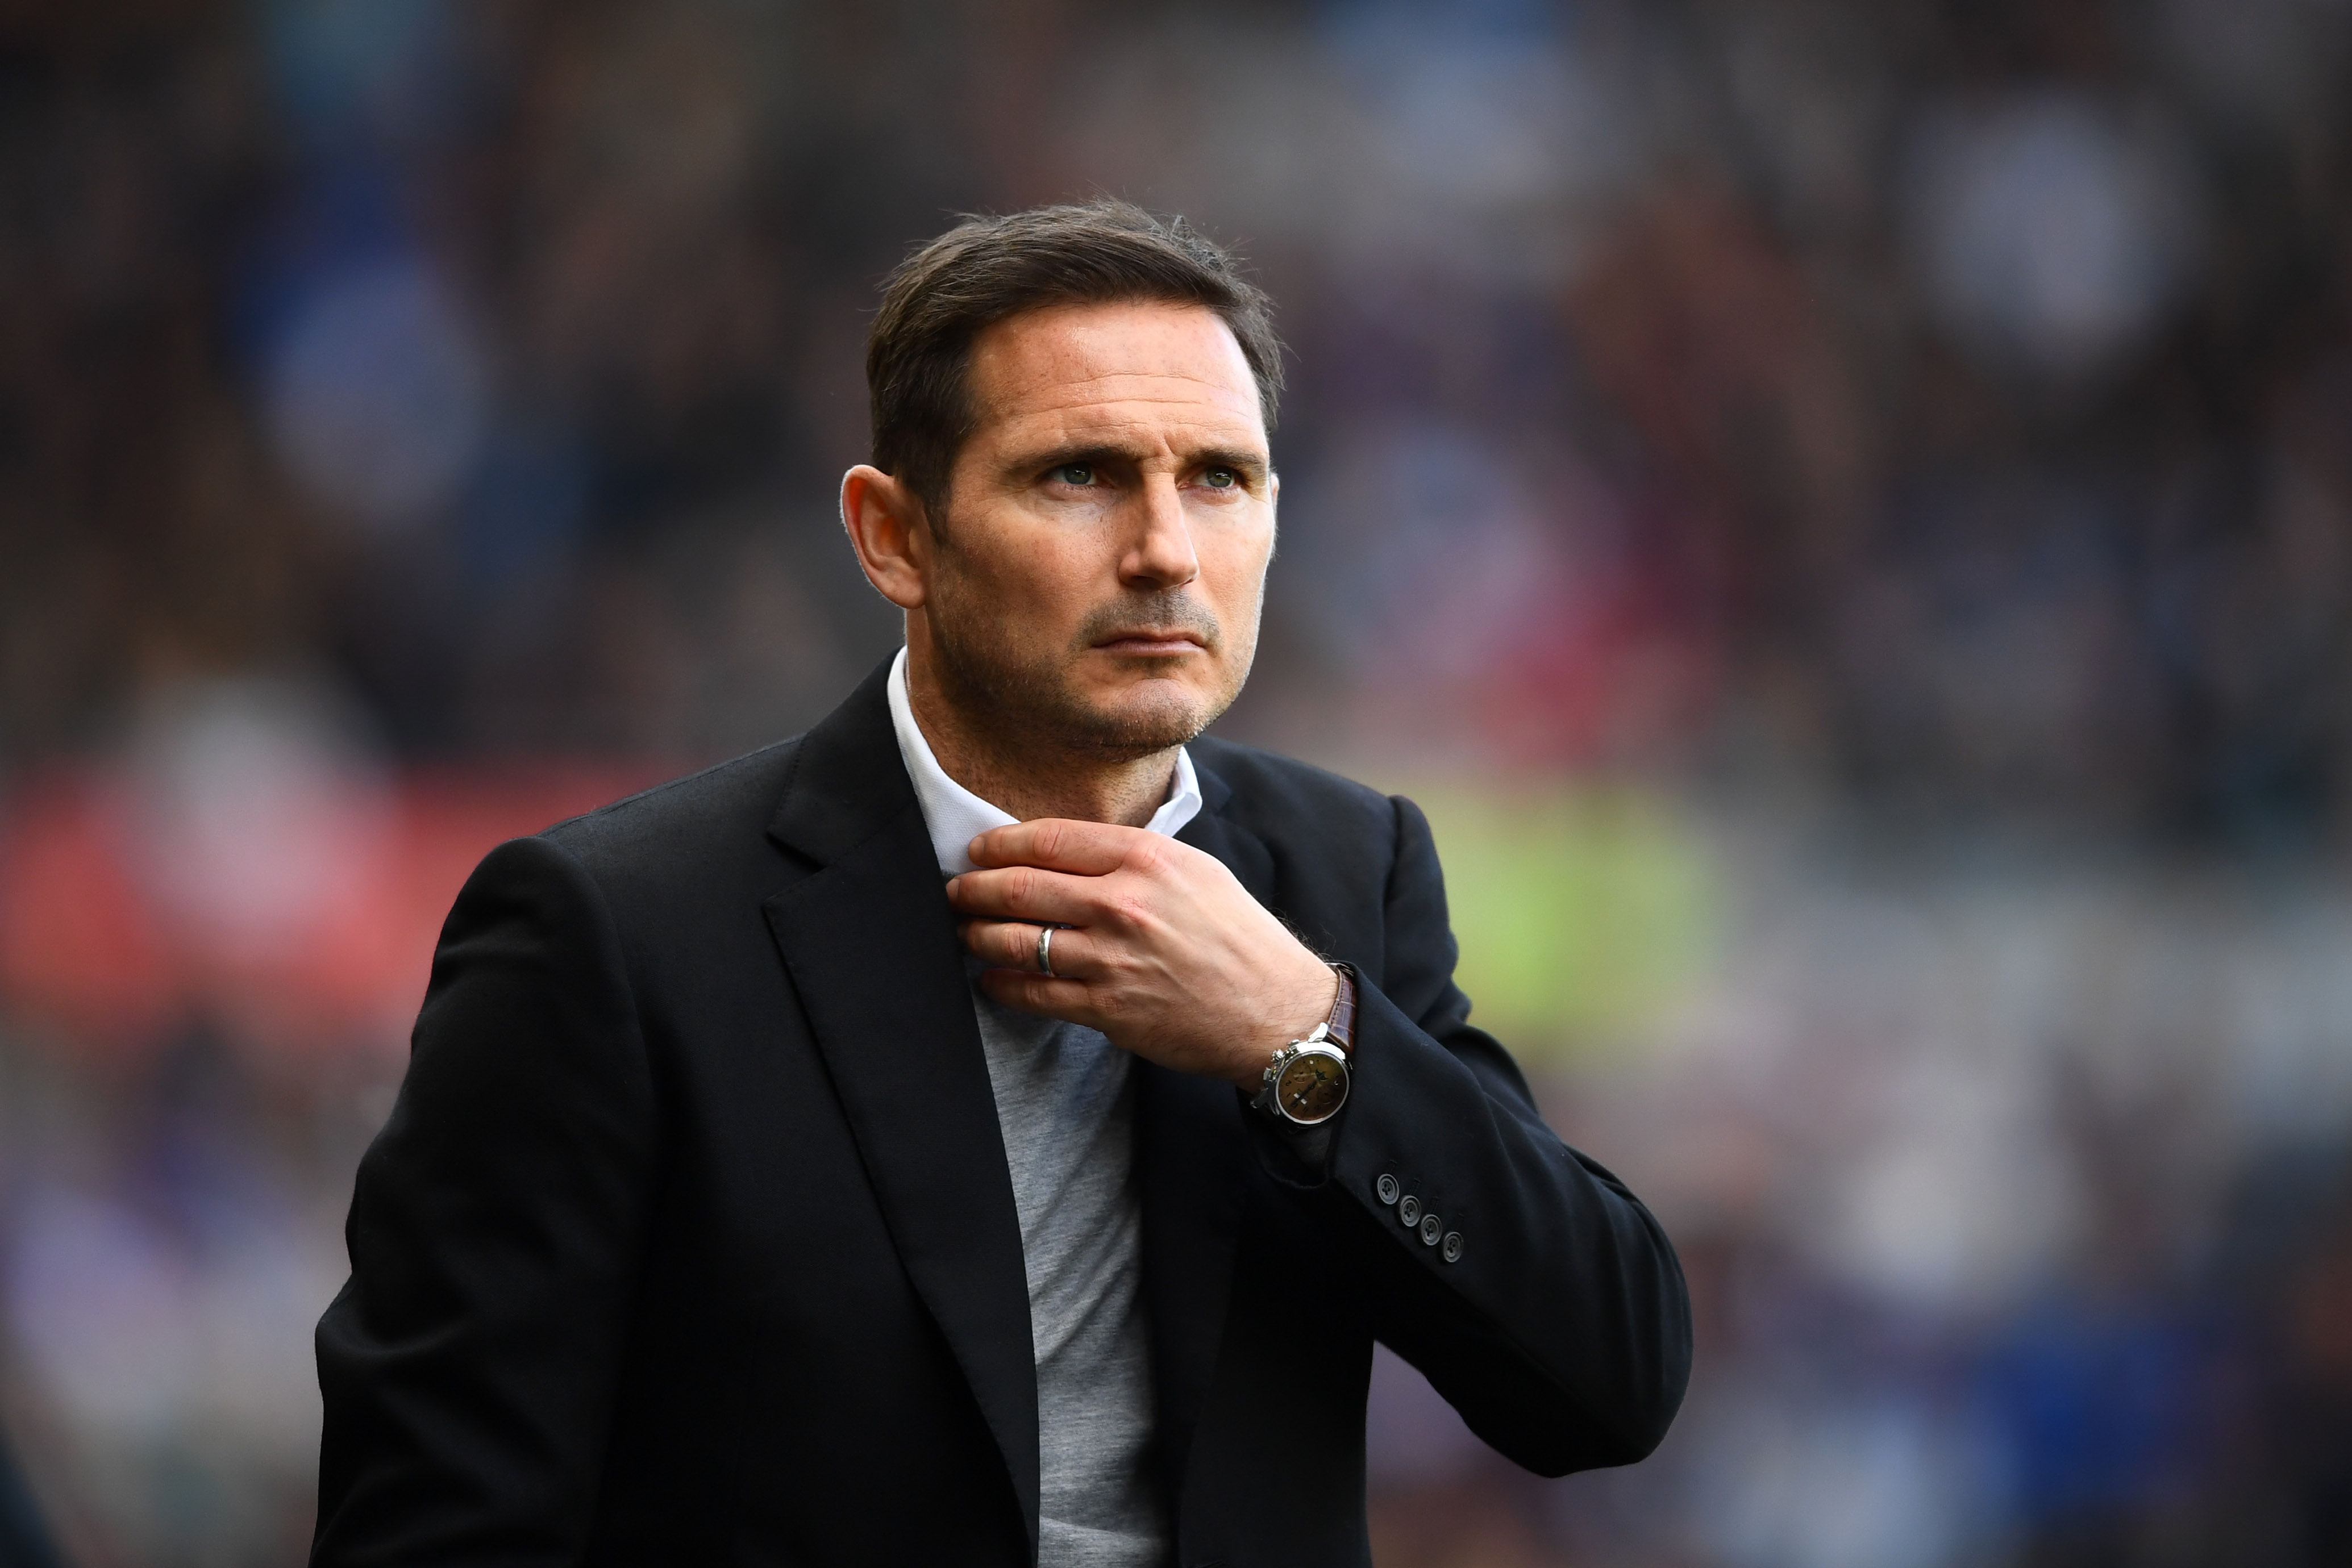 Chelsea to make official Lampard approach, plan usual backroom reshuffle — reports